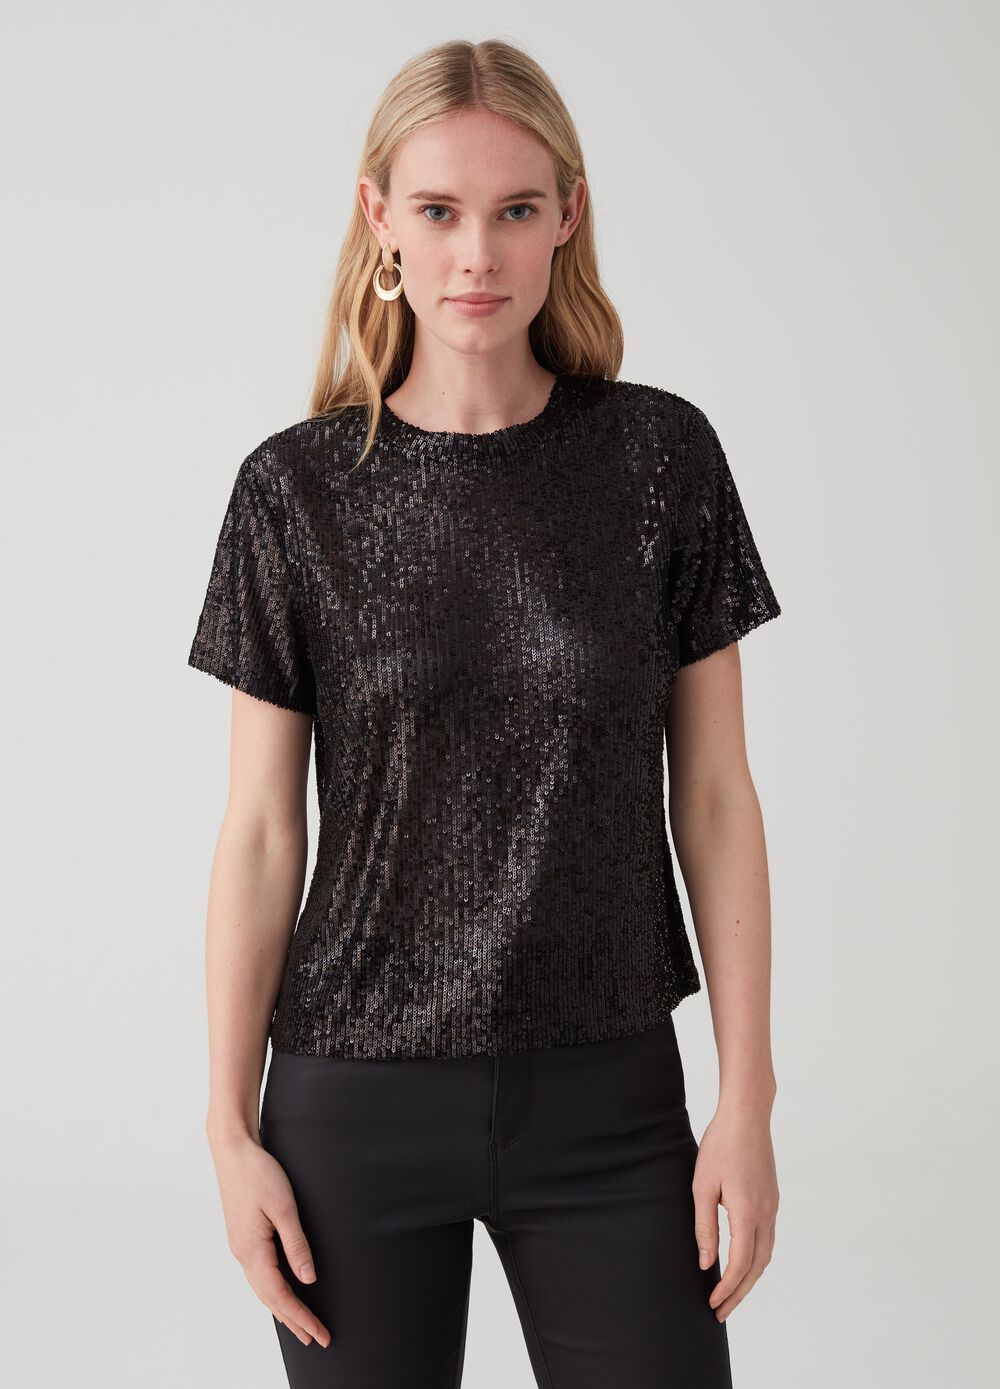 T-shirt with all-over sequins